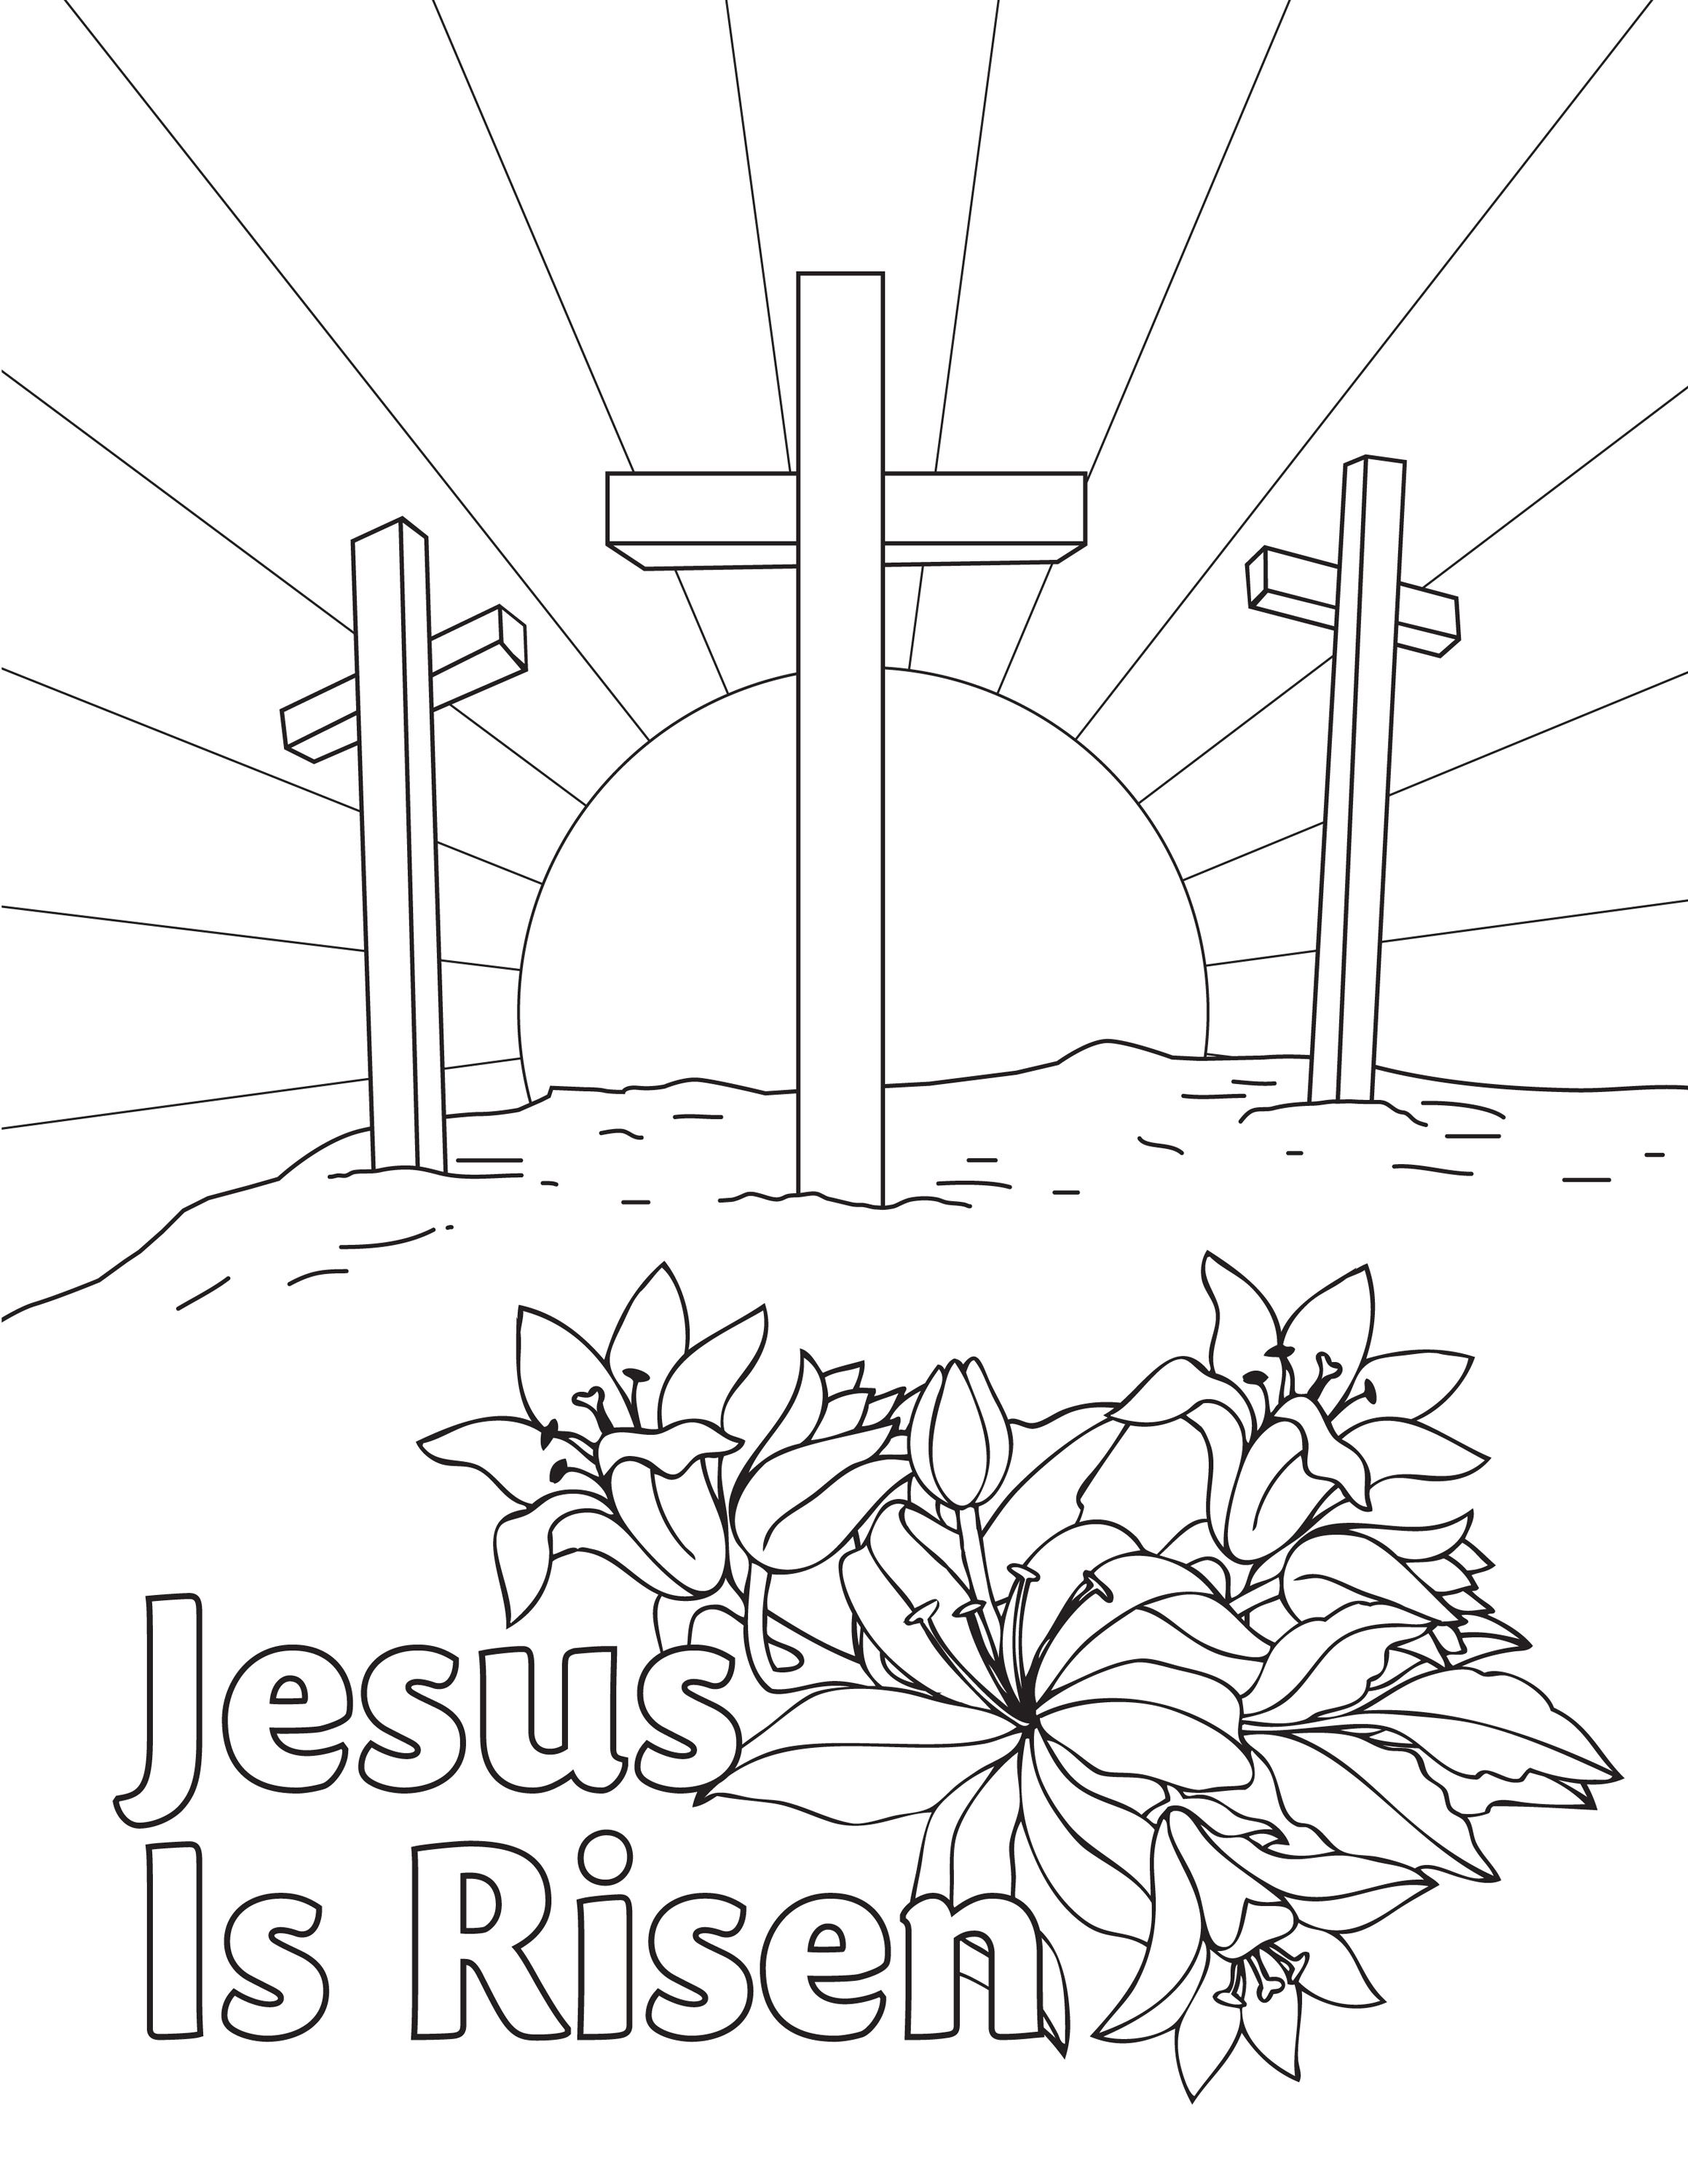 Free Easter Coloring Page Downloadable Printable From Aop Jesus Is Risen Homescho Jesus Coloring Pages Easter Coloring Sheets Easter Coloring Pages Printable